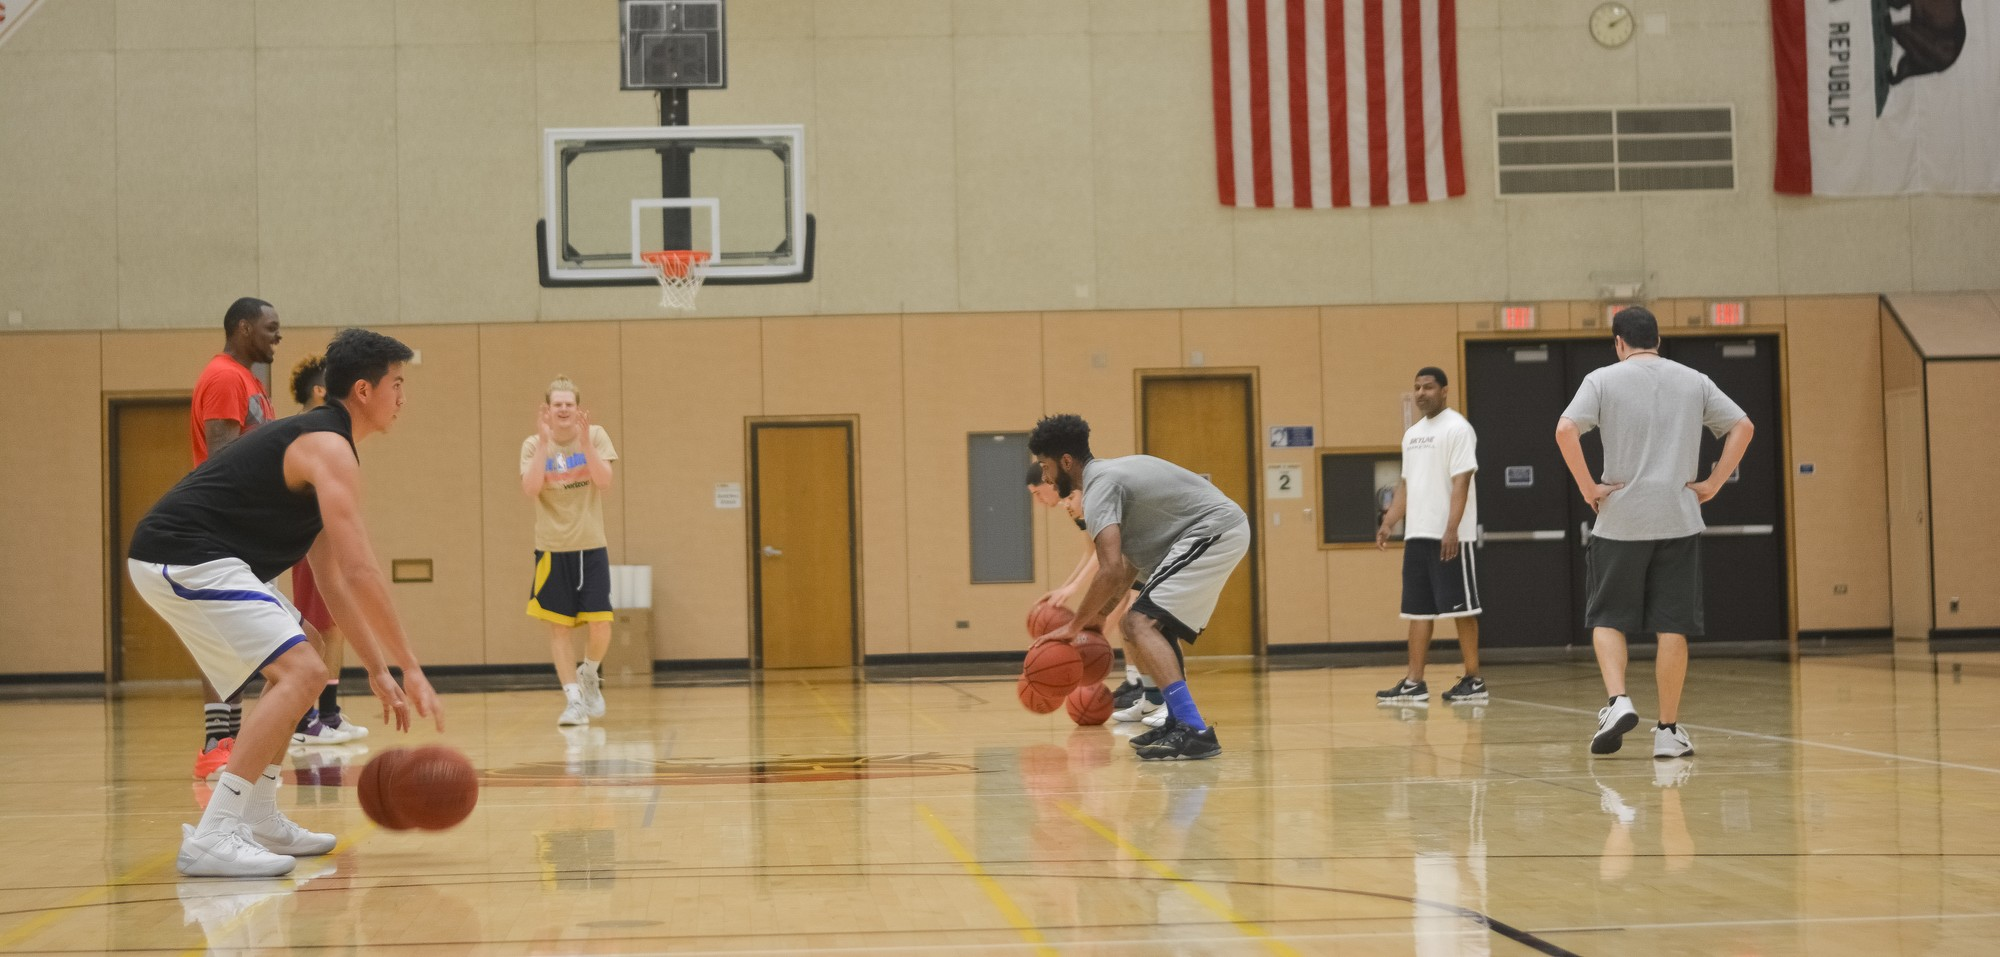 Physical education classes gives students the opportunity to try out different exercises. Photo credit: Chris Christenson